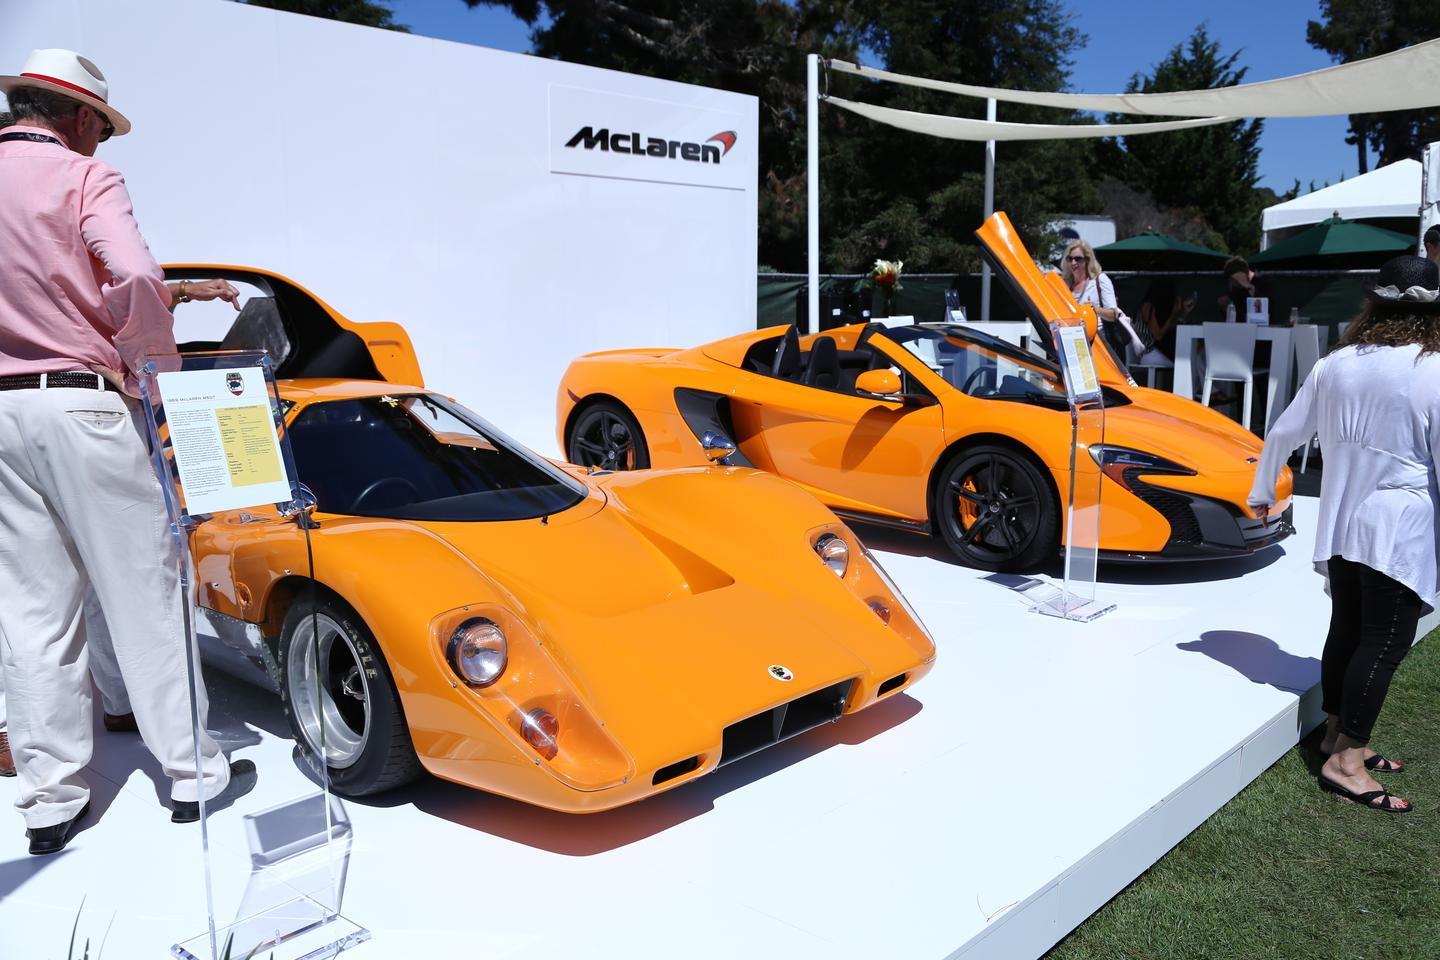 A McLaren 650S Spider on display with a 1969 M6GT at the Quail Motorsports event (Photo: Angus MacKenzie/Gizmag.com)